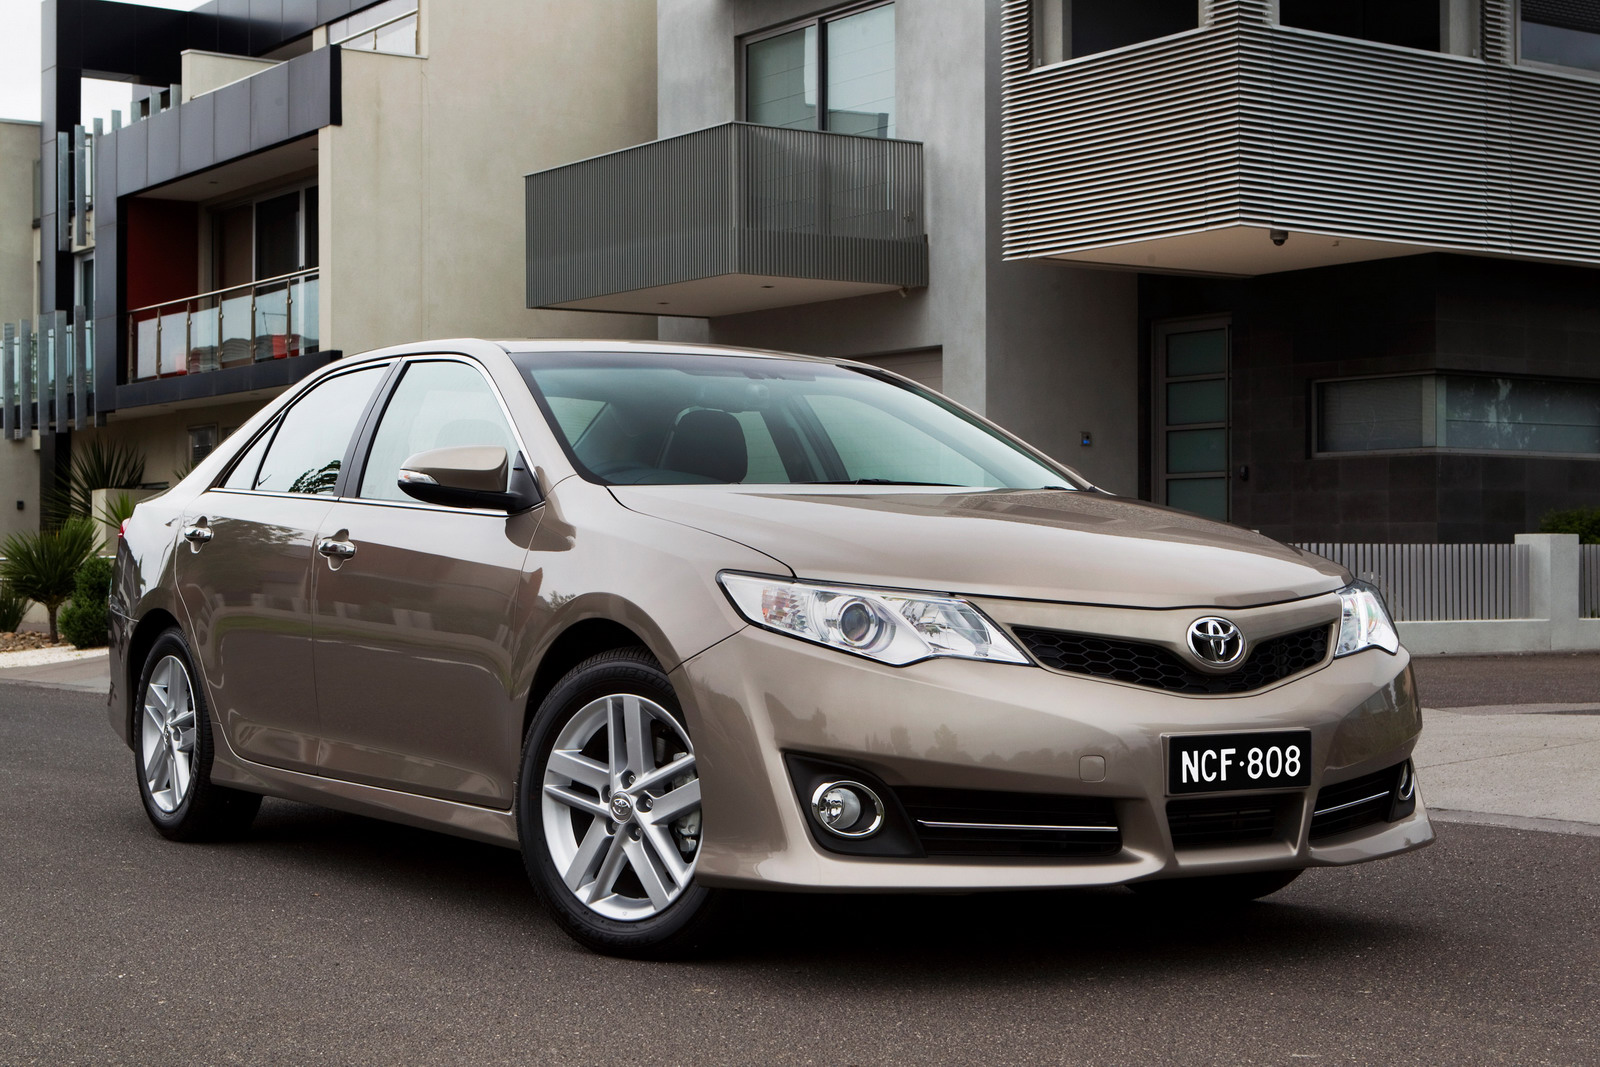 brand new toyota camry price in australia modifikasi grand veloz 2016 2012 for unveiled autoevolution